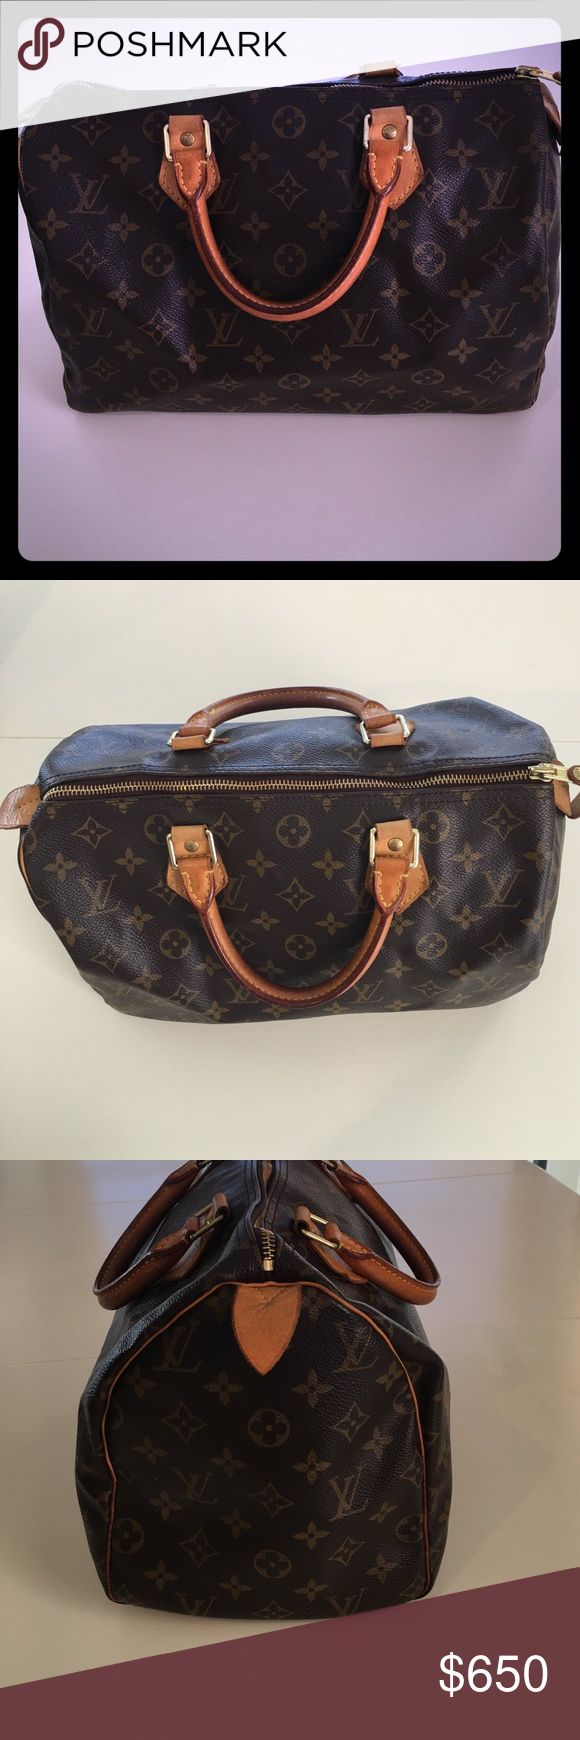 Louis Vuitton Speedy 30 Excellent Used Condition.  Natural deepening of color on leather handles.  Has been stored without use for 6 years and prior to that not used often.  1 scratch on bottom of bag, not noticeable bc of location.  Ready for someone else to love 💕😊Measurements:  11.8 (length) x 8.3 (height) x 6.7 (width) NO DUST BAG Louis Vuitton Bags Satchels